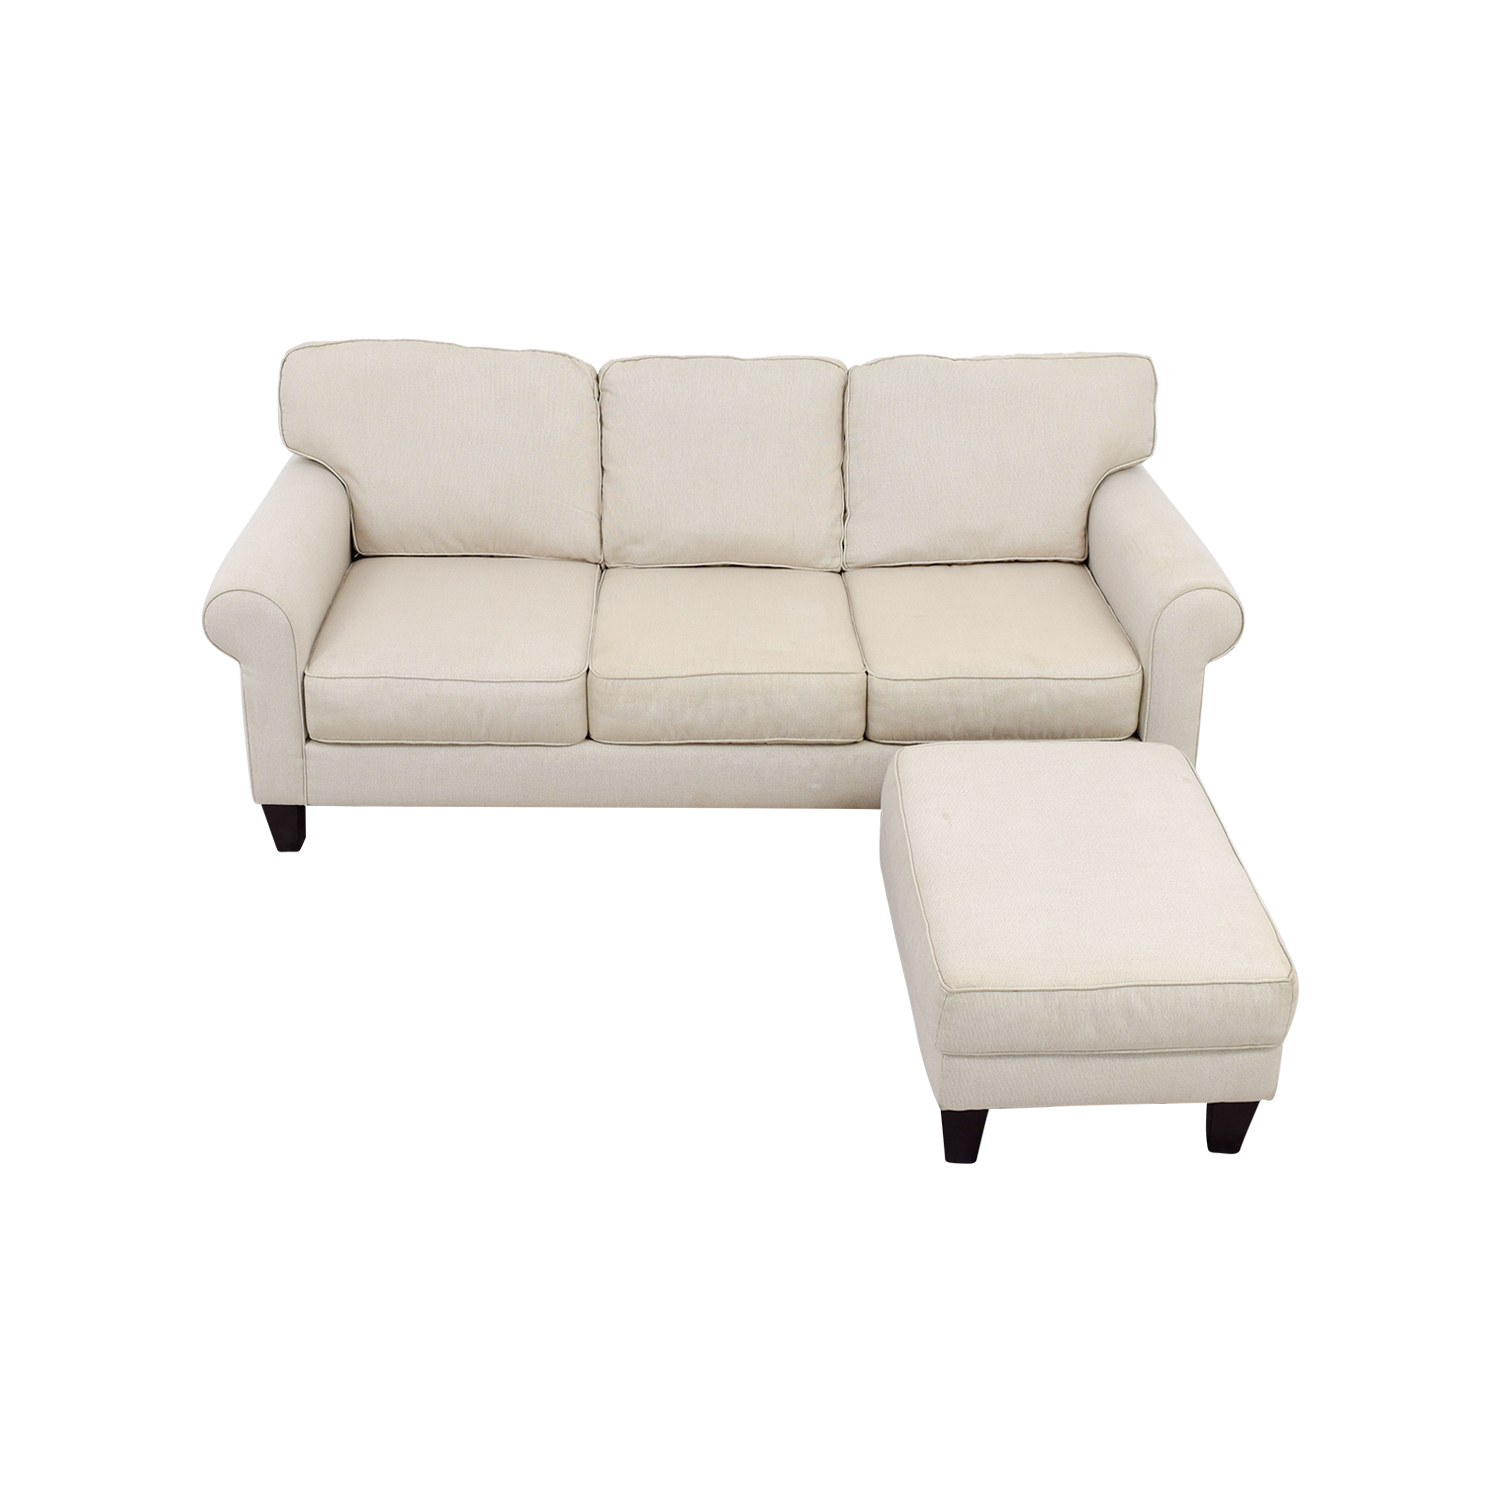 Raymour & Flanigan Raymour & Flanigan White Three Seat Sofa and Ottoman price